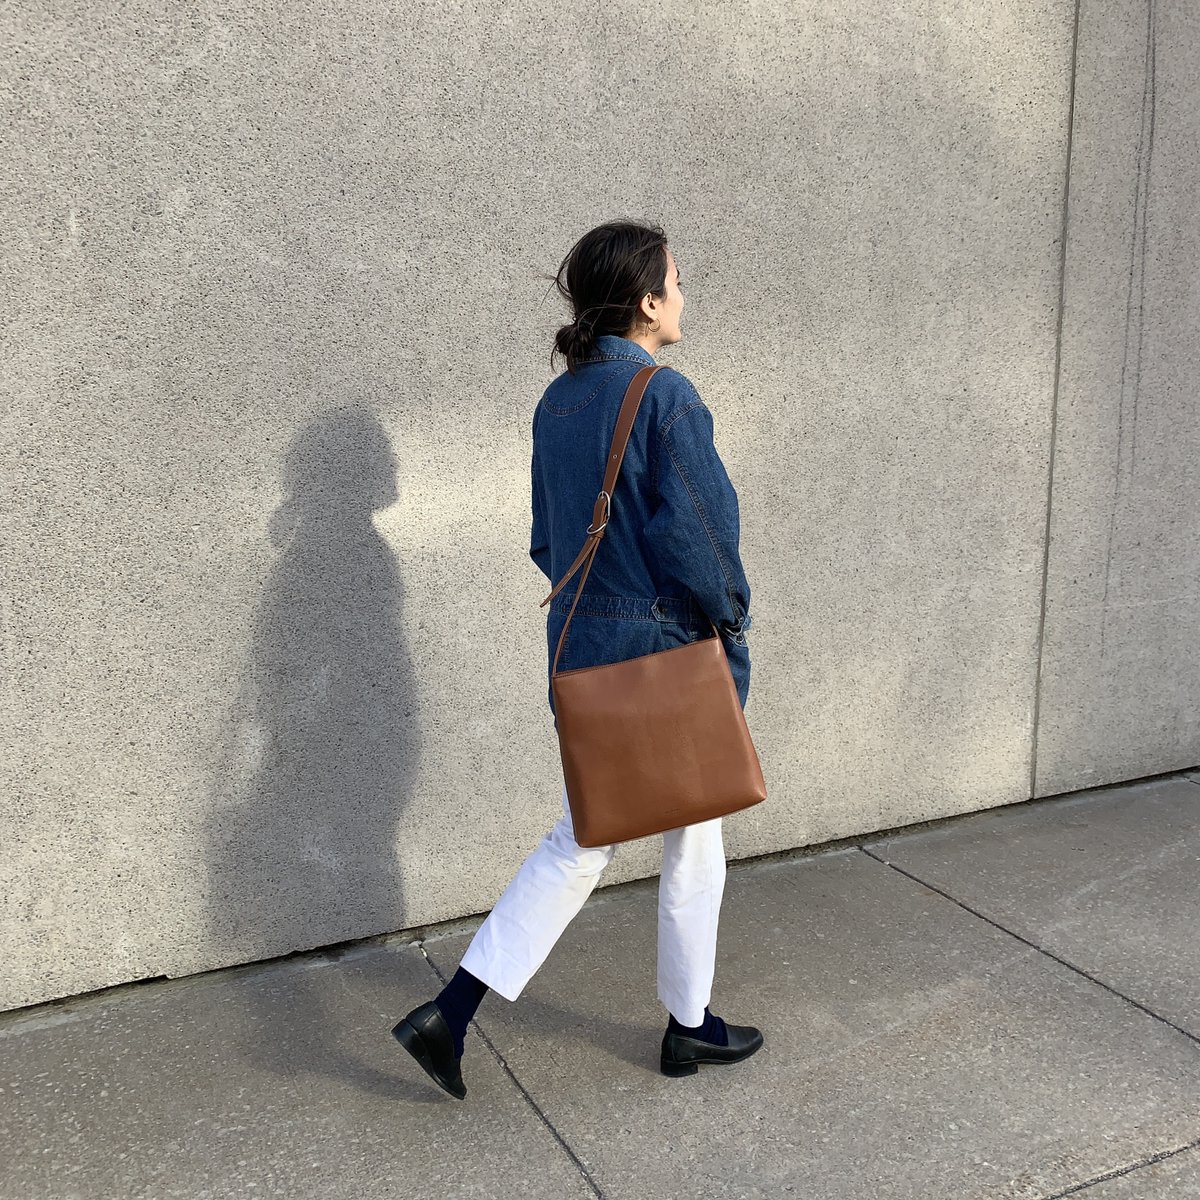 A breath of fresh air is what you need right now. @trouserlady enjoys her walk (away from others) with the MINTY.  Get yours here: https://bddy.me/3dxOBCJ . Une bouffée d'air frais Magasinez ici: https://mattandnat.com/en_ca/minty-chili-matte-nickel… . #mattandnat #vegan #crueltyfree #recycled #styleinspopic.twitter.com/lo4bOmmGV4